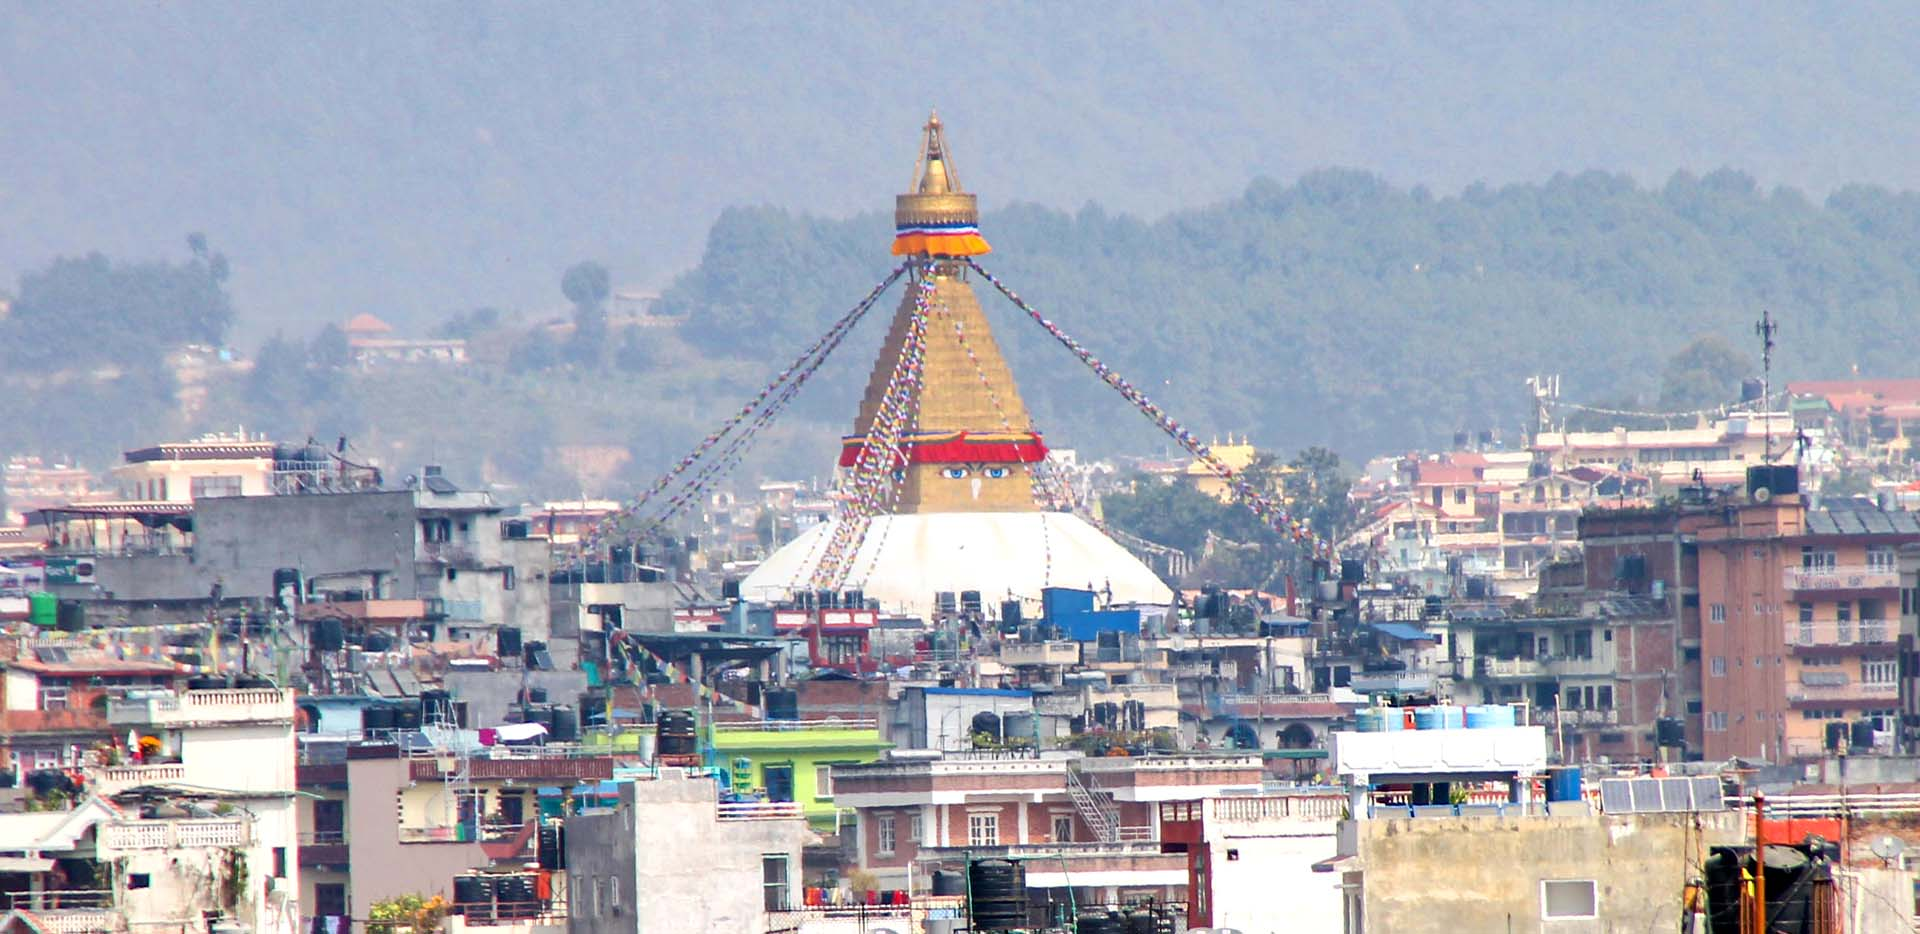 Bouddha Stupa in the Distance